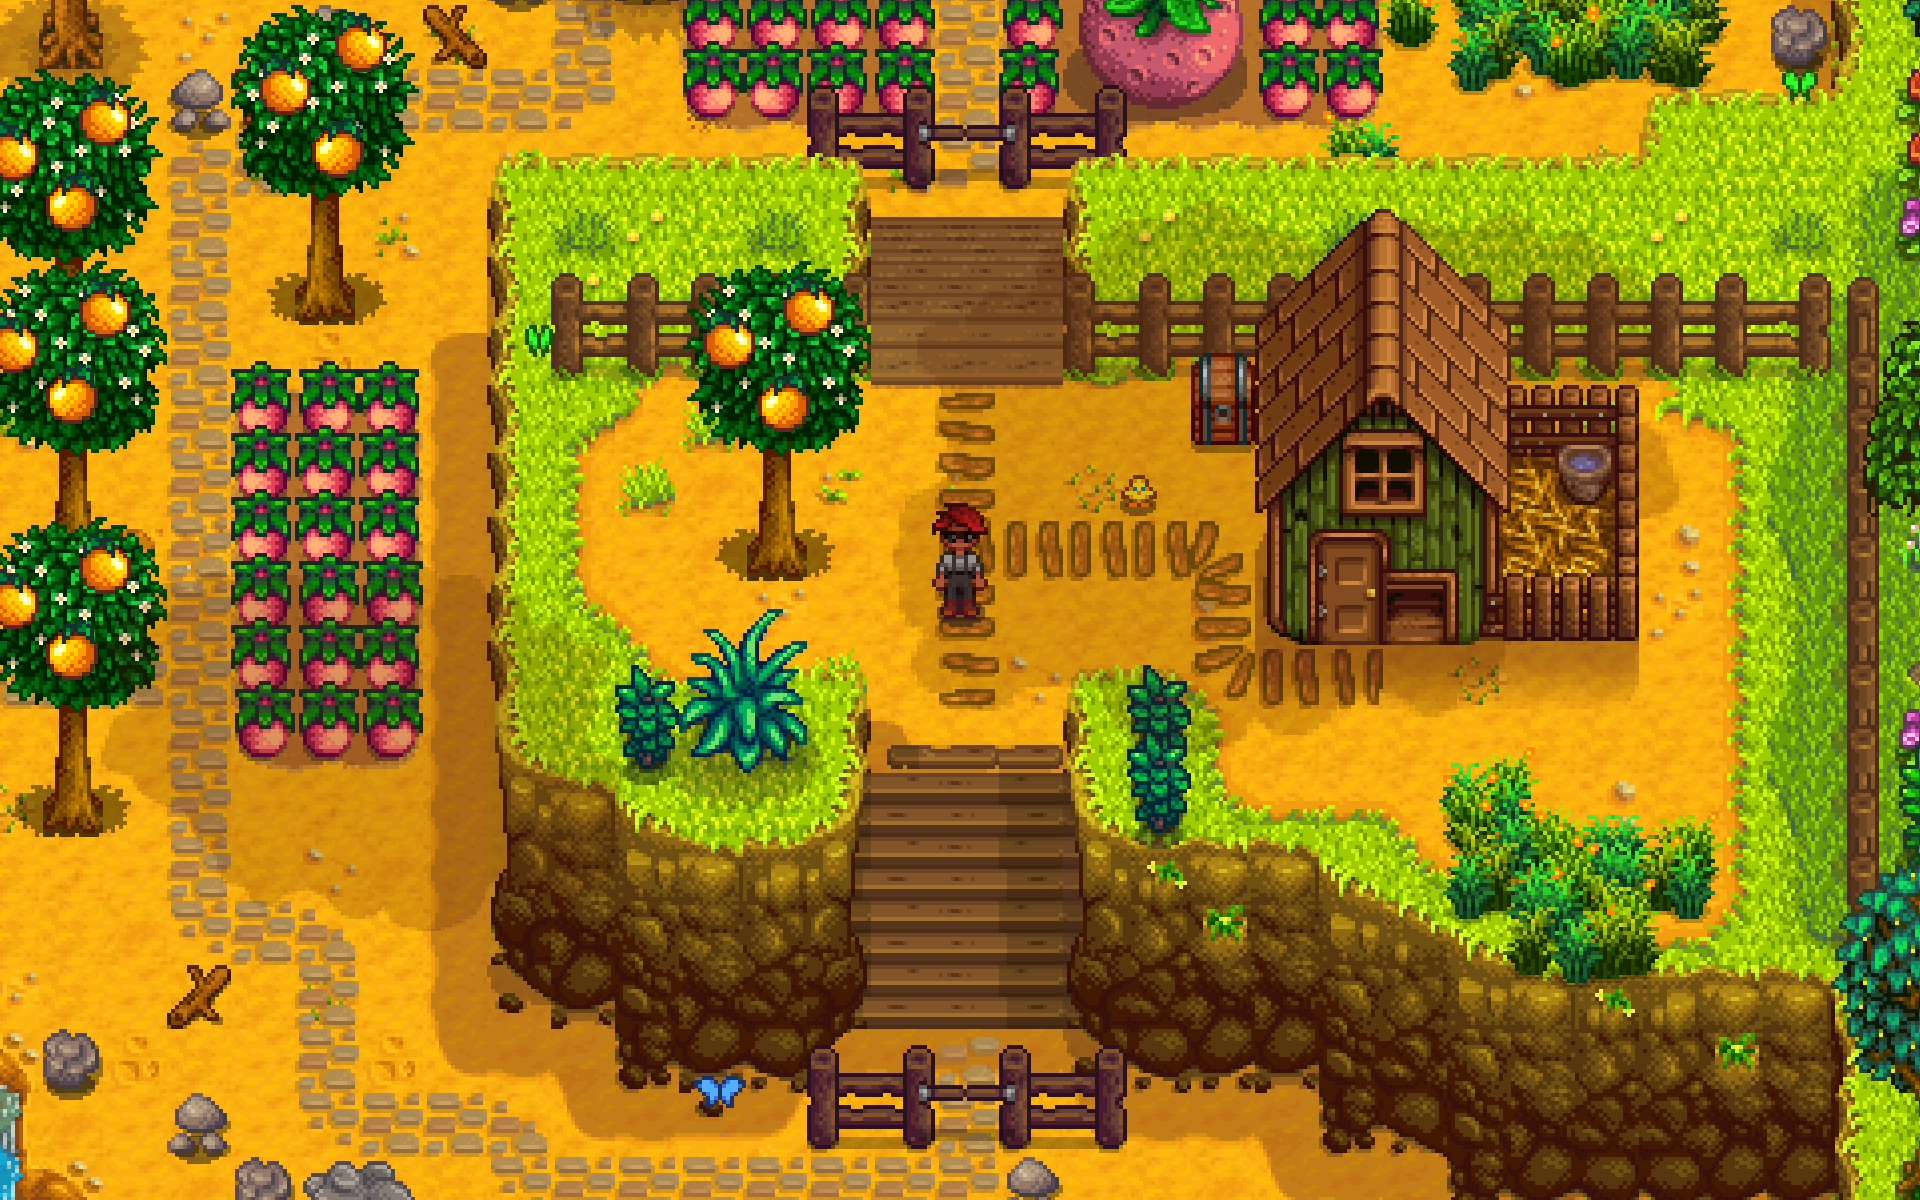 Stardew Valley Review | Trusted Reviews